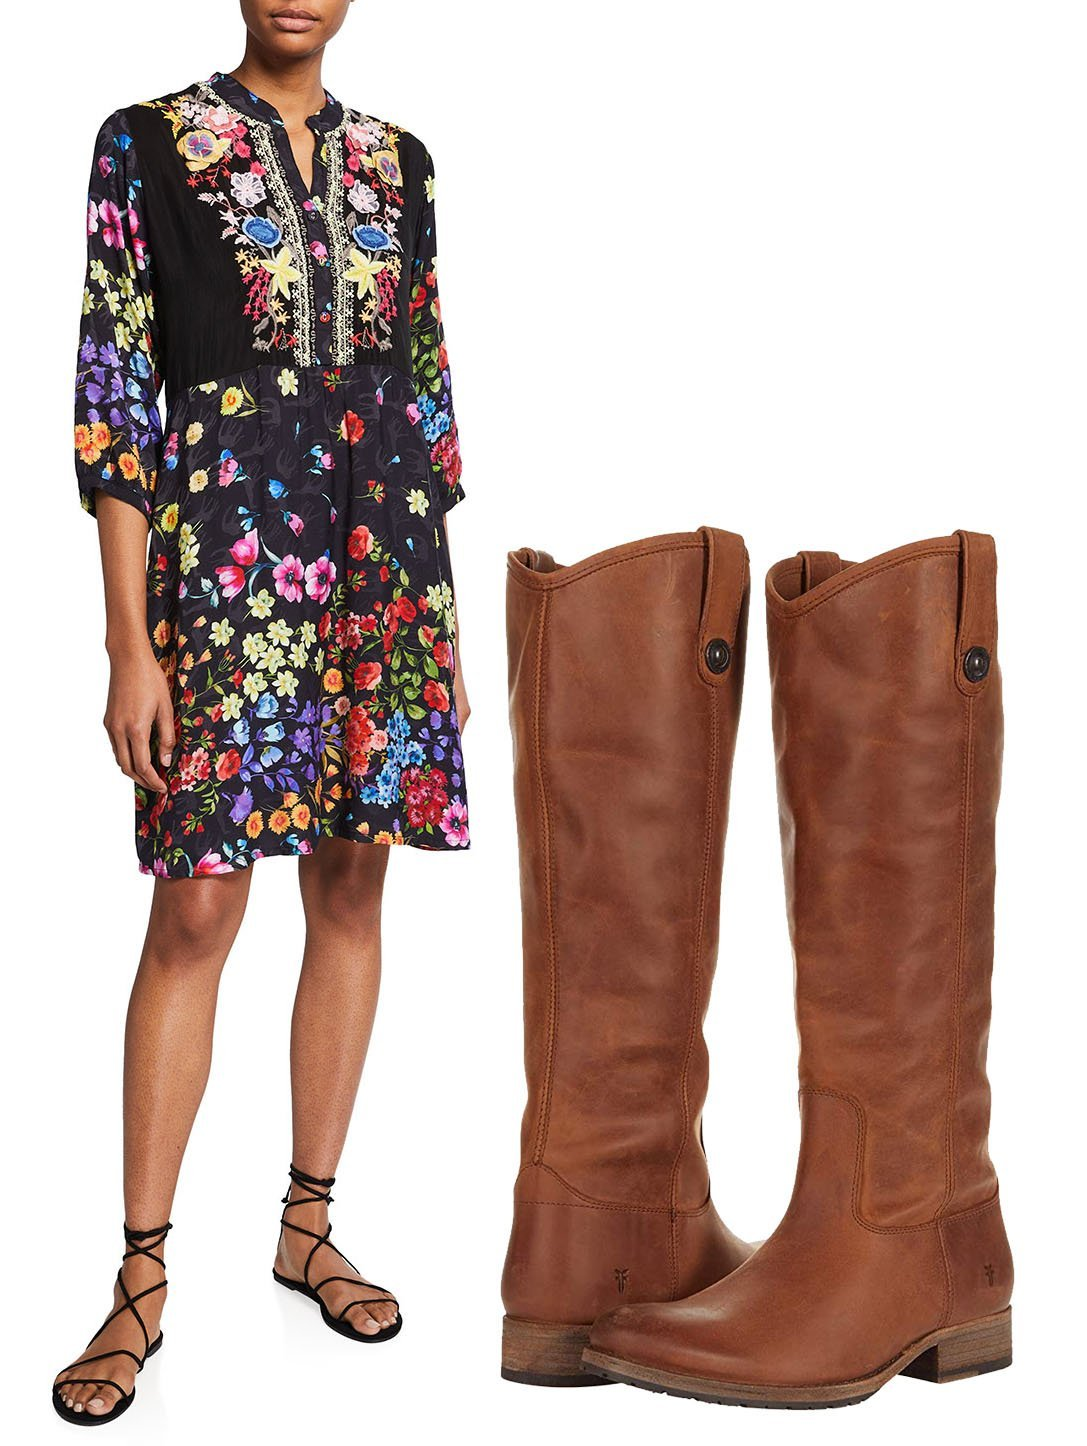 Johnny Was Ciara Floral-Print with Slip and Frye Melissa Button Lug Boots